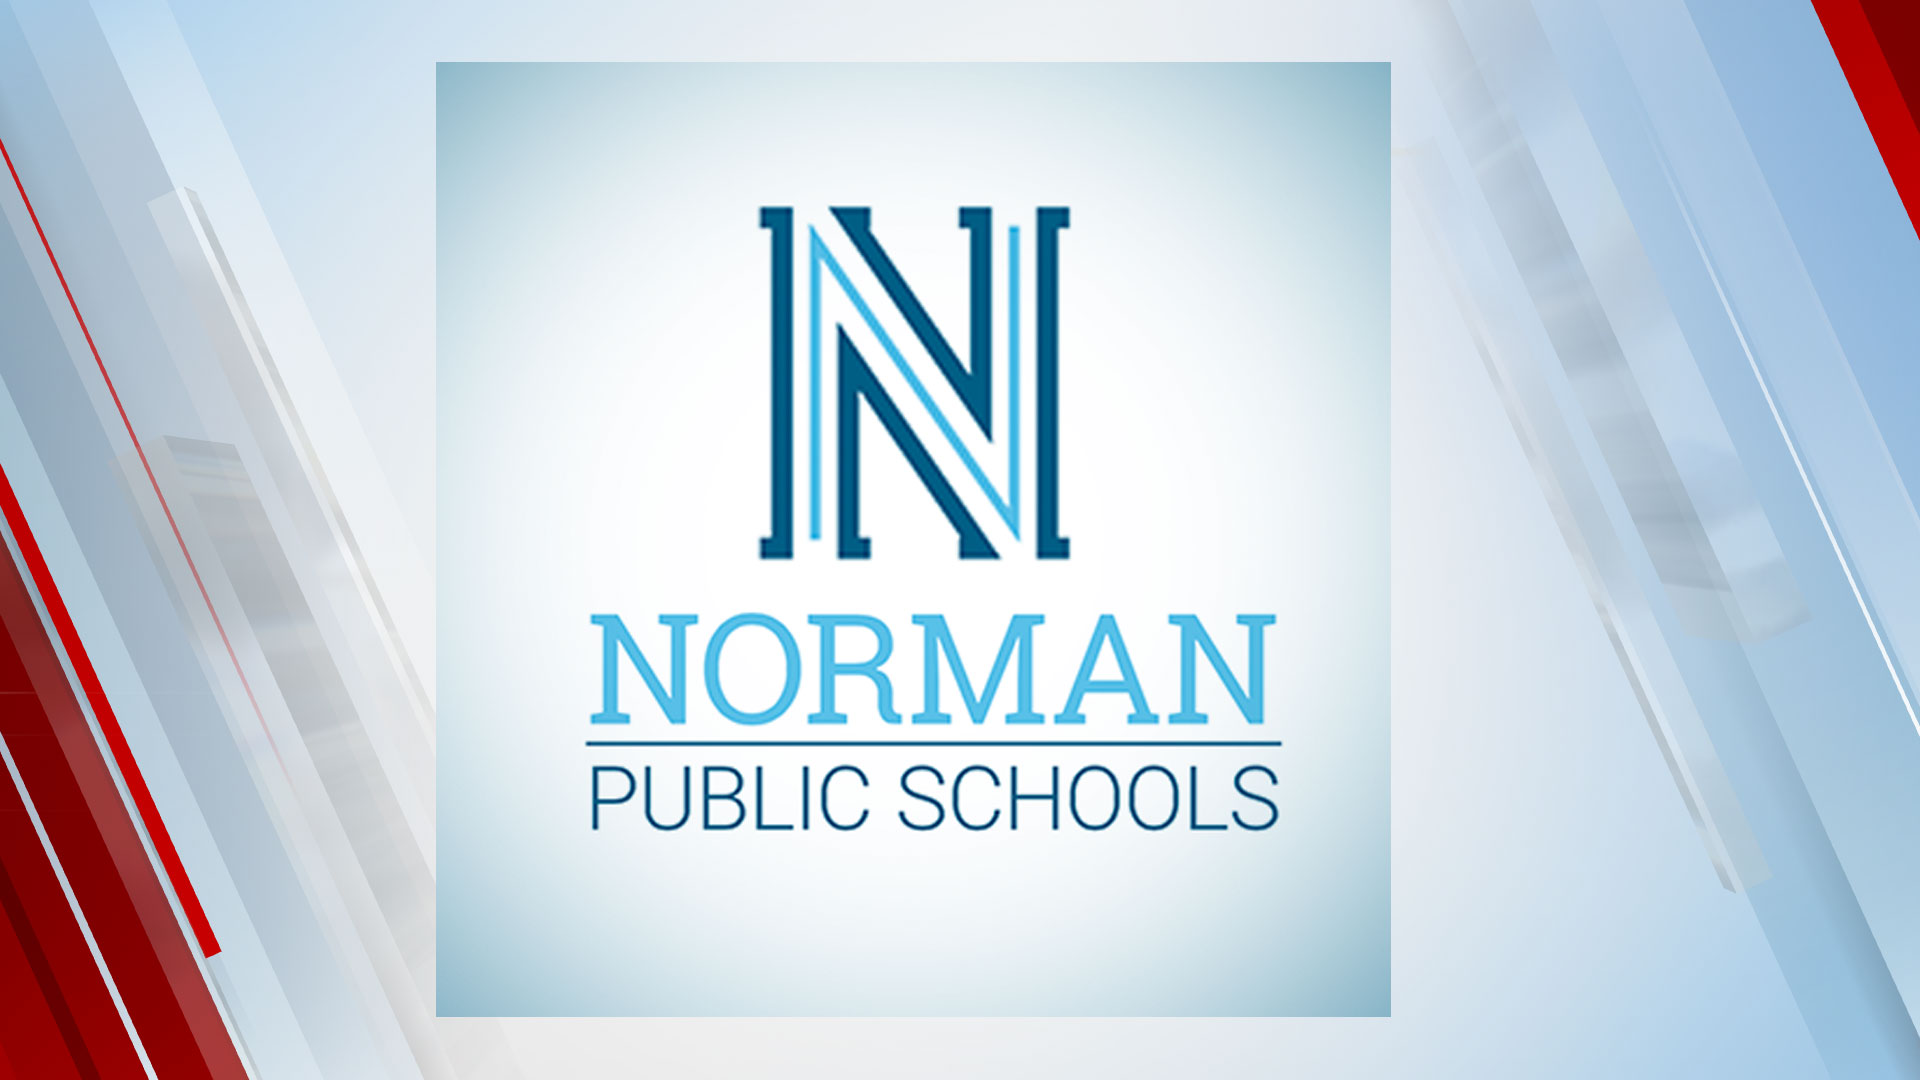 Norman Public School Students To Return To In-Person Instruction